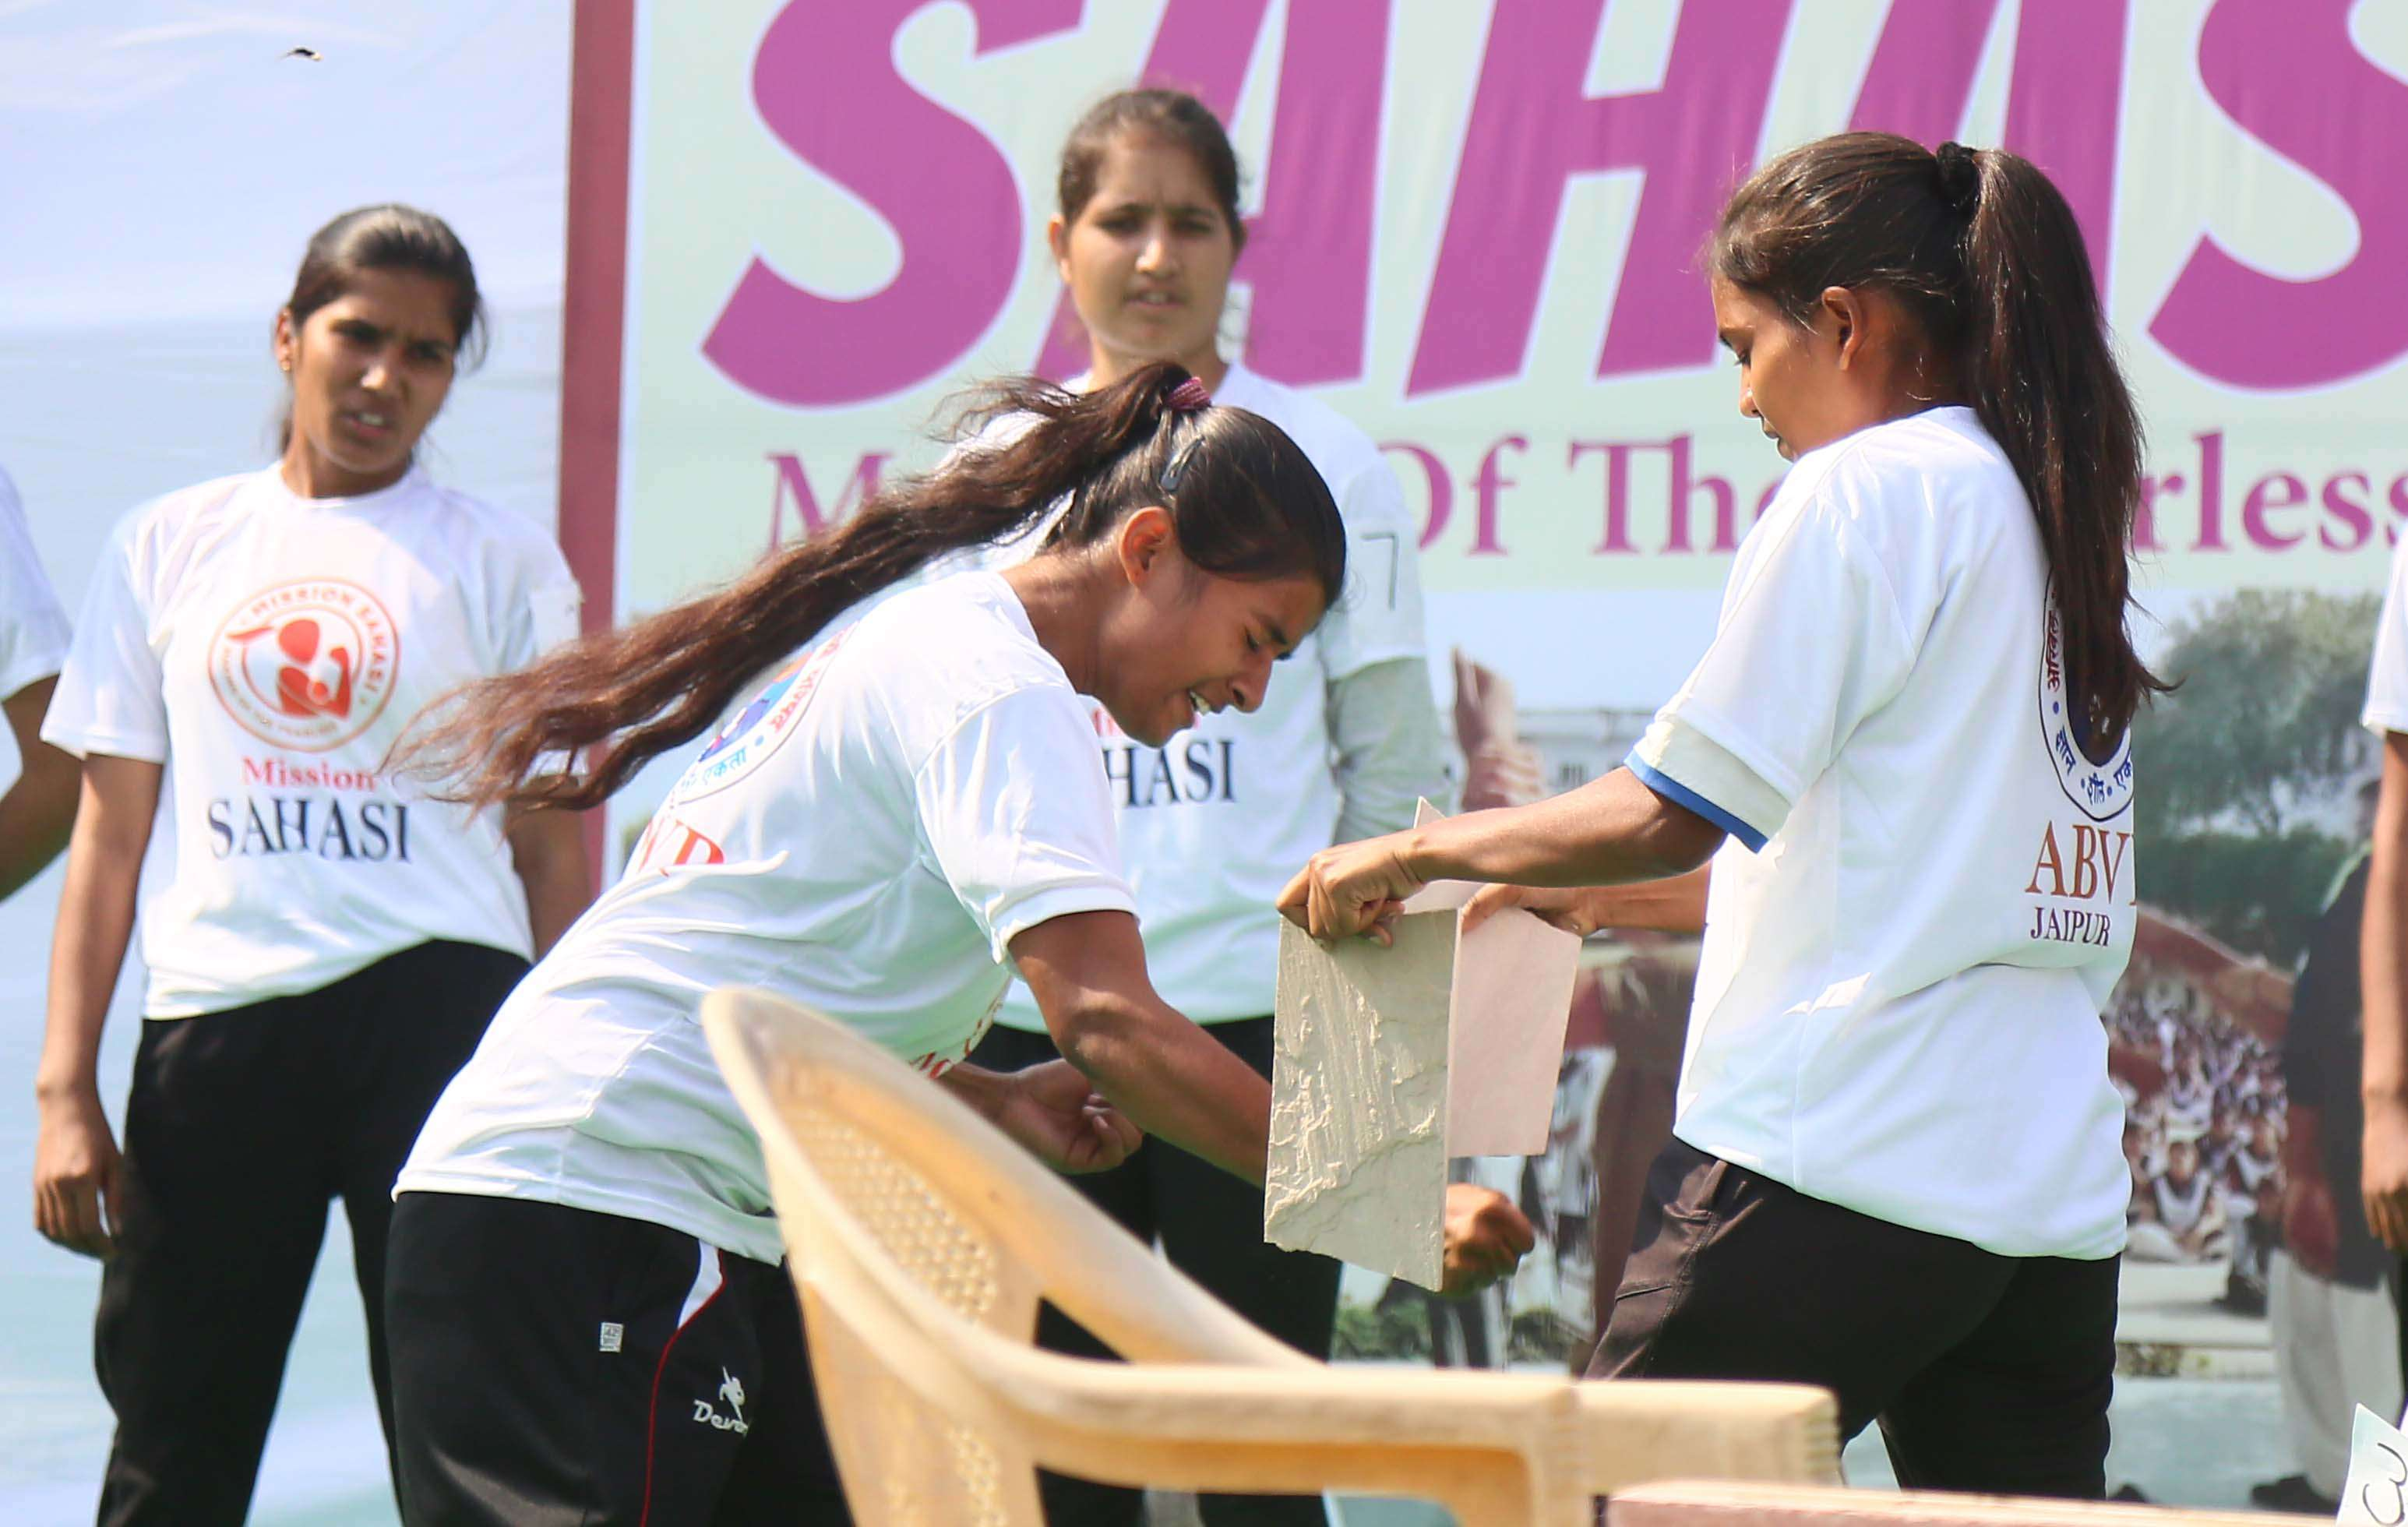 A participant breaks a wooden slab as part of her training